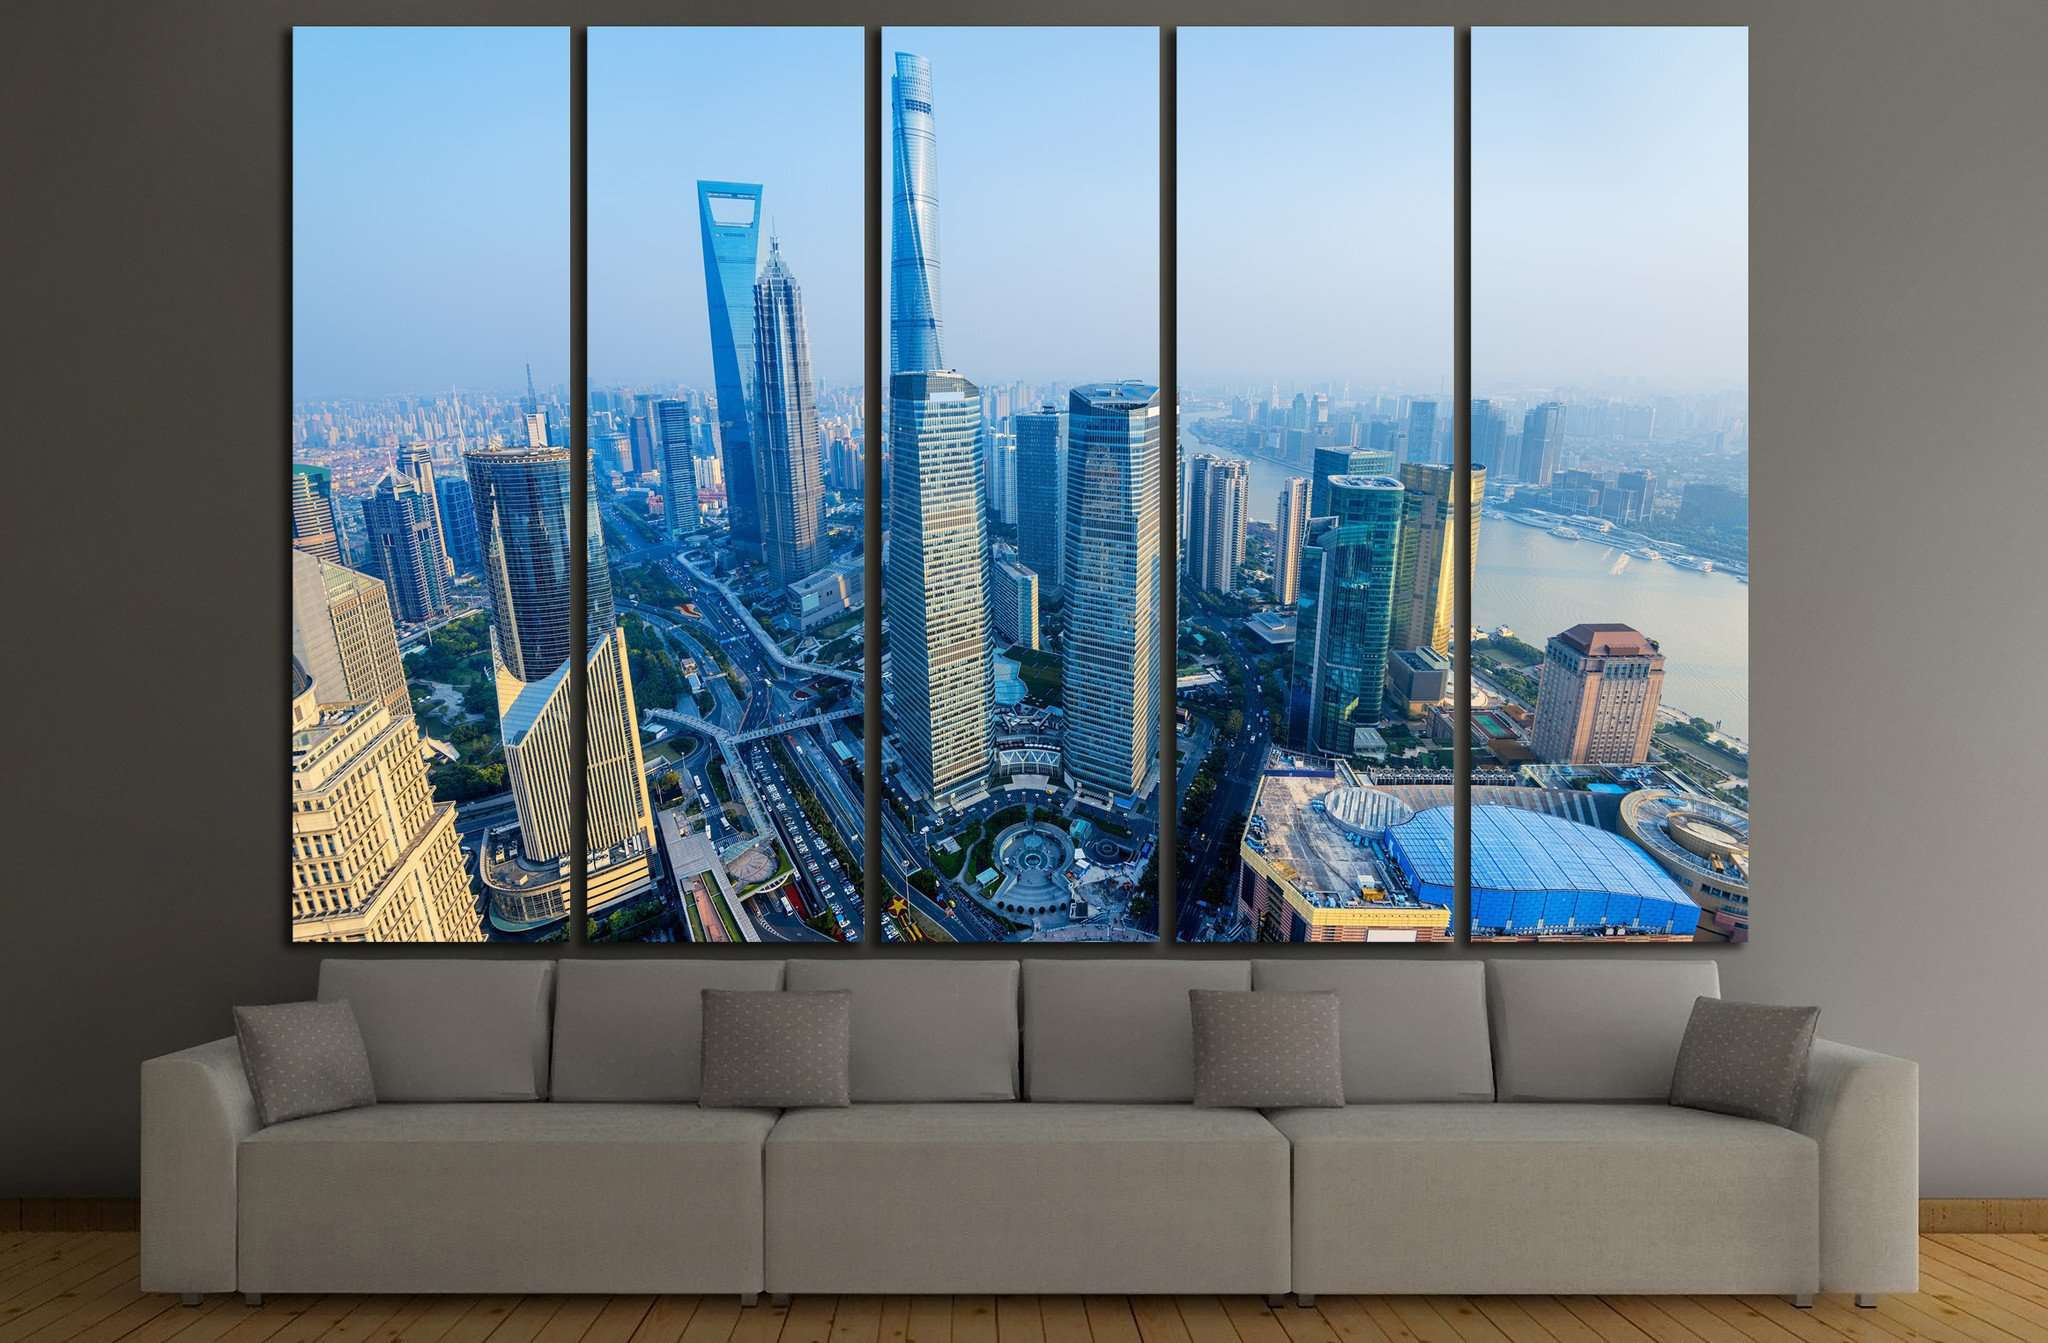 Shanghai Skyline with its newly built iconic skyscrapers №1196 Ready to Hang Canvas Print